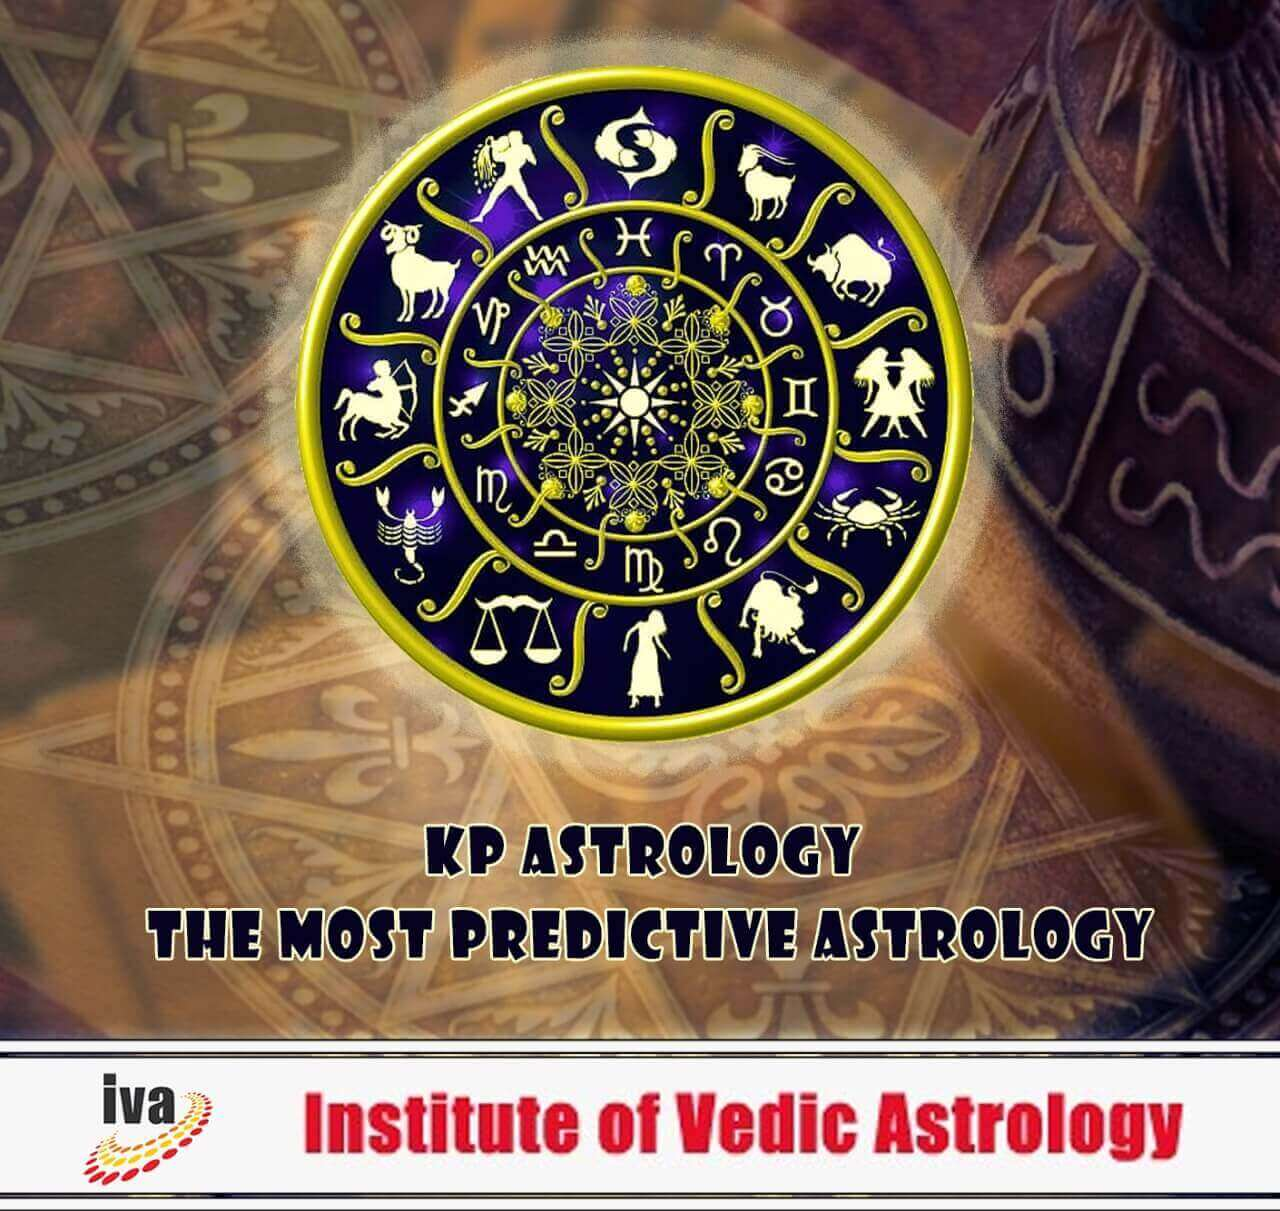 KP Astrology The Most Predictive Astrology